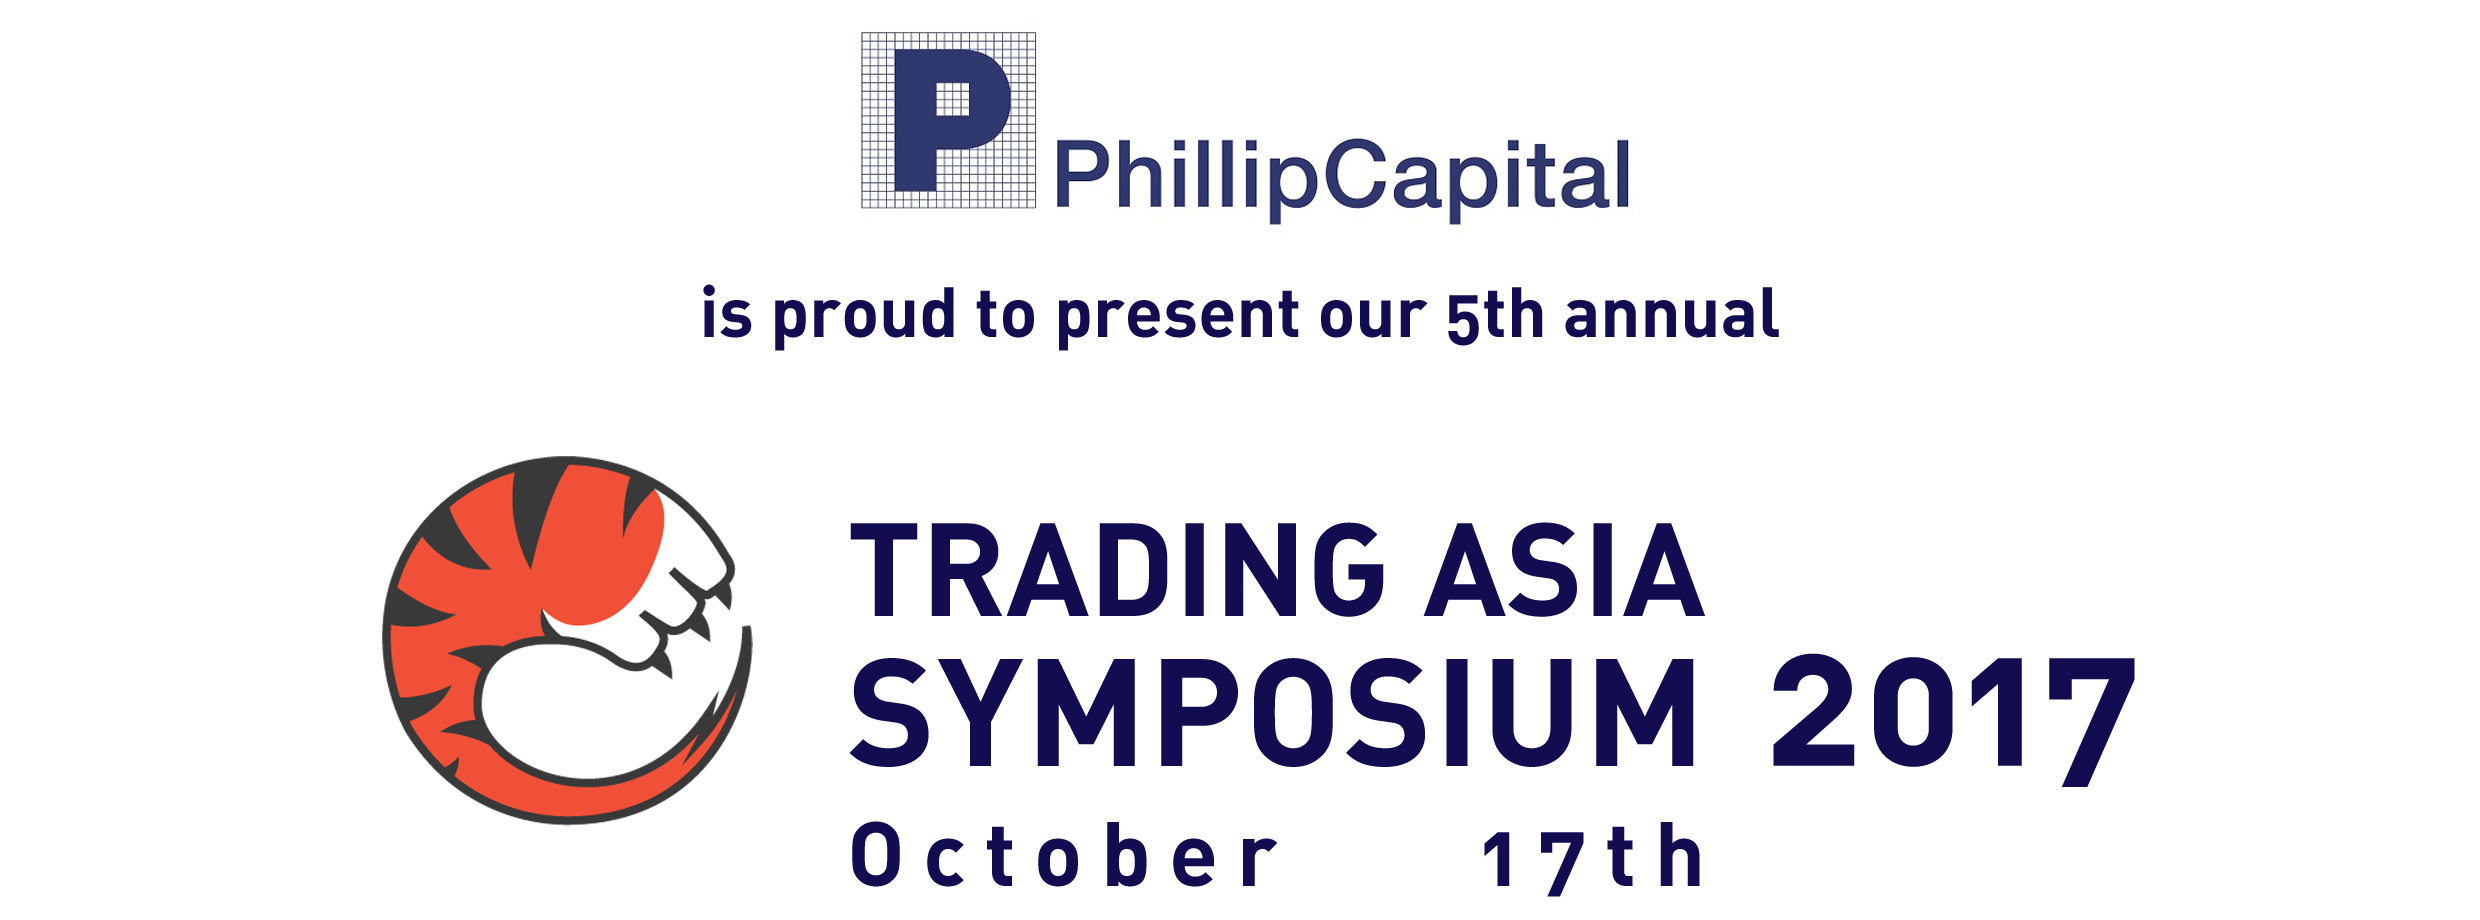 5th Annual Trading Asia Symposium